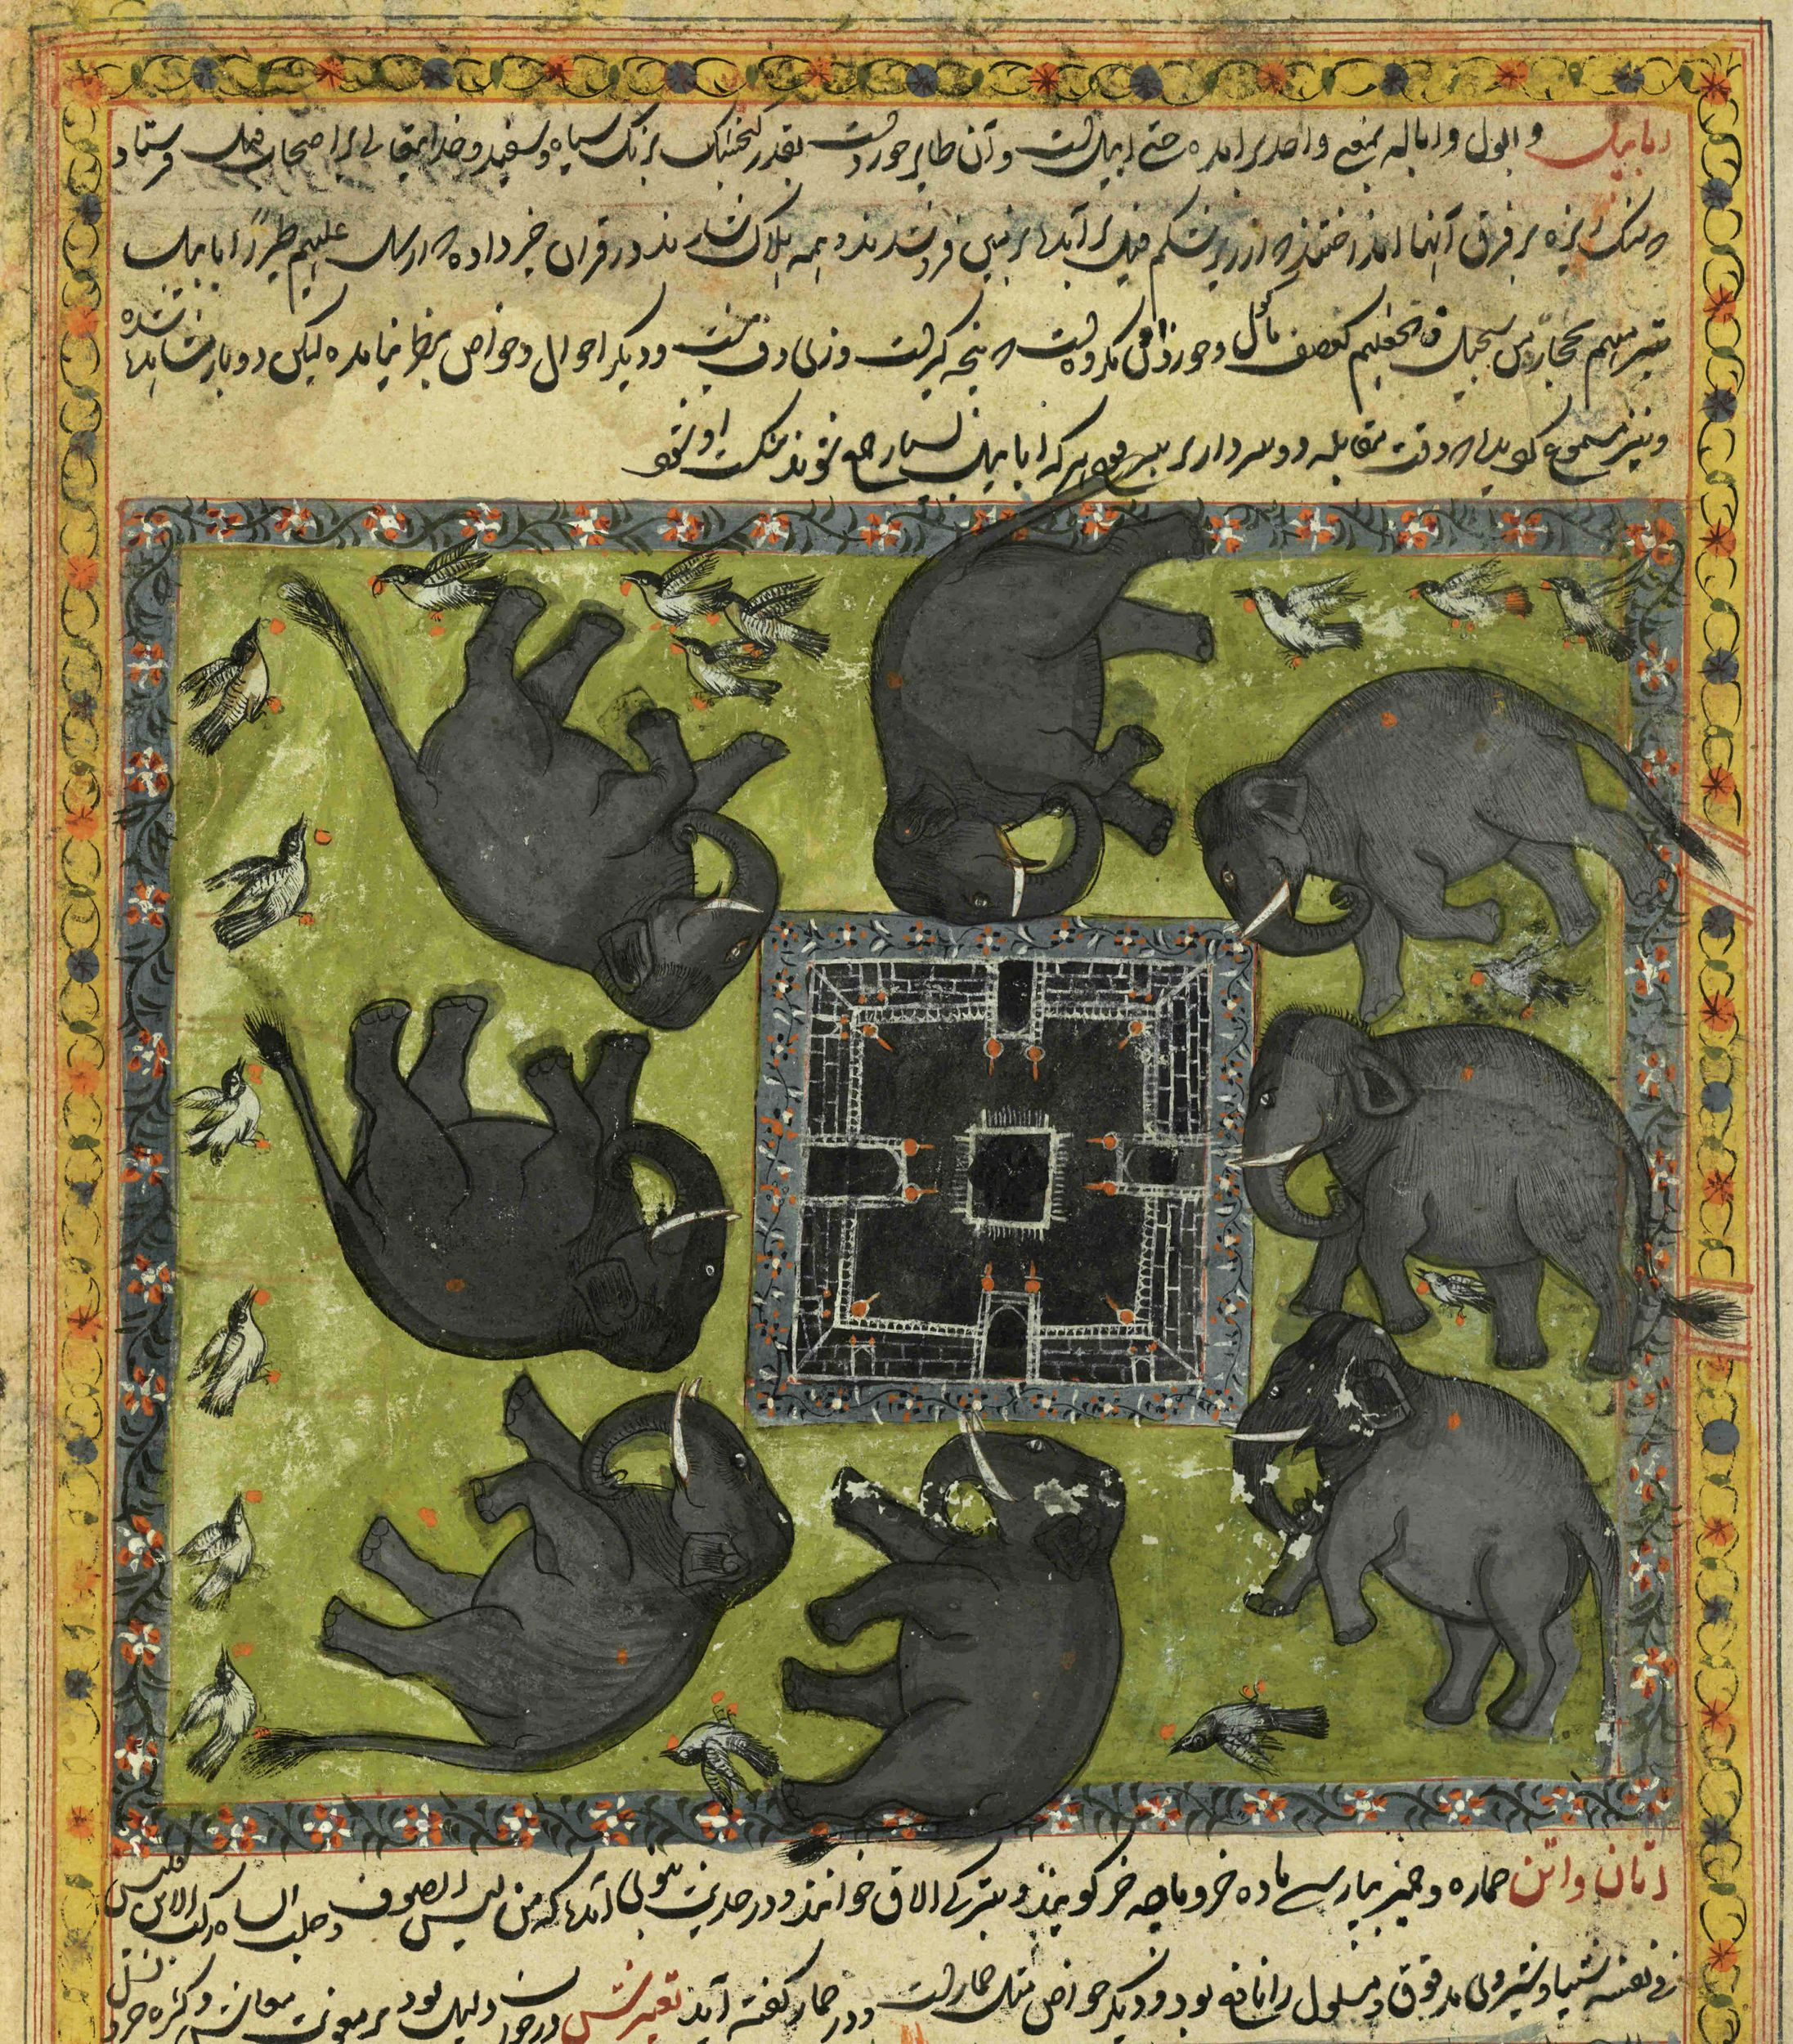 """""""The circle of elephants depicts the attack on Mecca (around 570)"""", in the manuscript copy of """"The Book of Wonders of the Age""""(17th or 18th century), 2 works bound together : 1 - """"Haiyat al-Haiyawan (Lives of the Animals)"""" by al-Damiri (1341-1405) and 2 - """"'Aja'ib al-makhluqat wa-ghara'ib al-mawjudat (Marvels of Things Created and Miraculous Aspects of Things Existing)"""" by al-Qazwini (ca. 1203-1283 CE), illustrated by a workshop in India, University of St Andrews Library ms32(o)"""